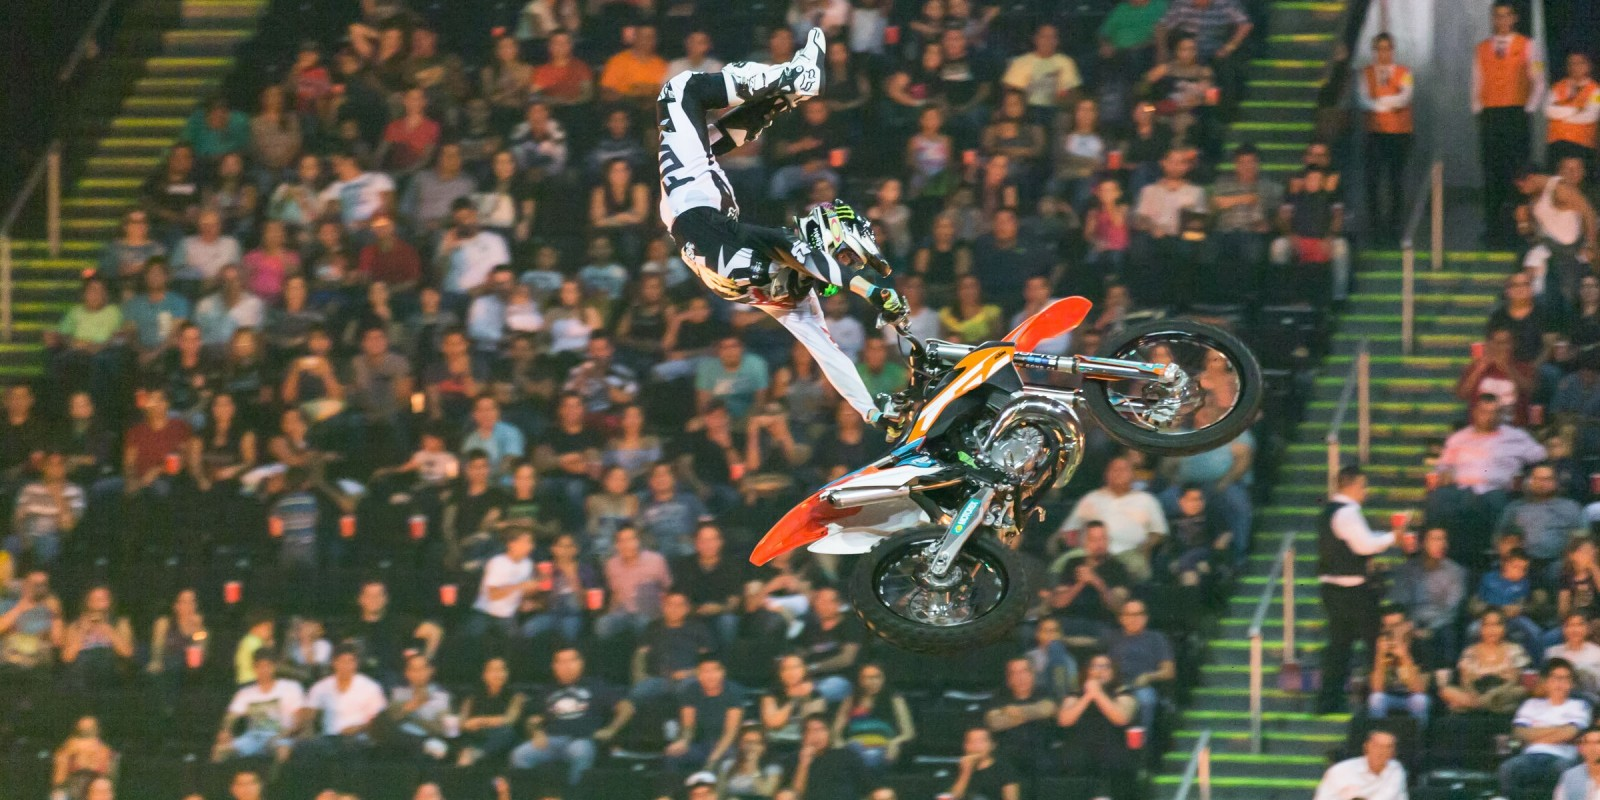 FMX competition